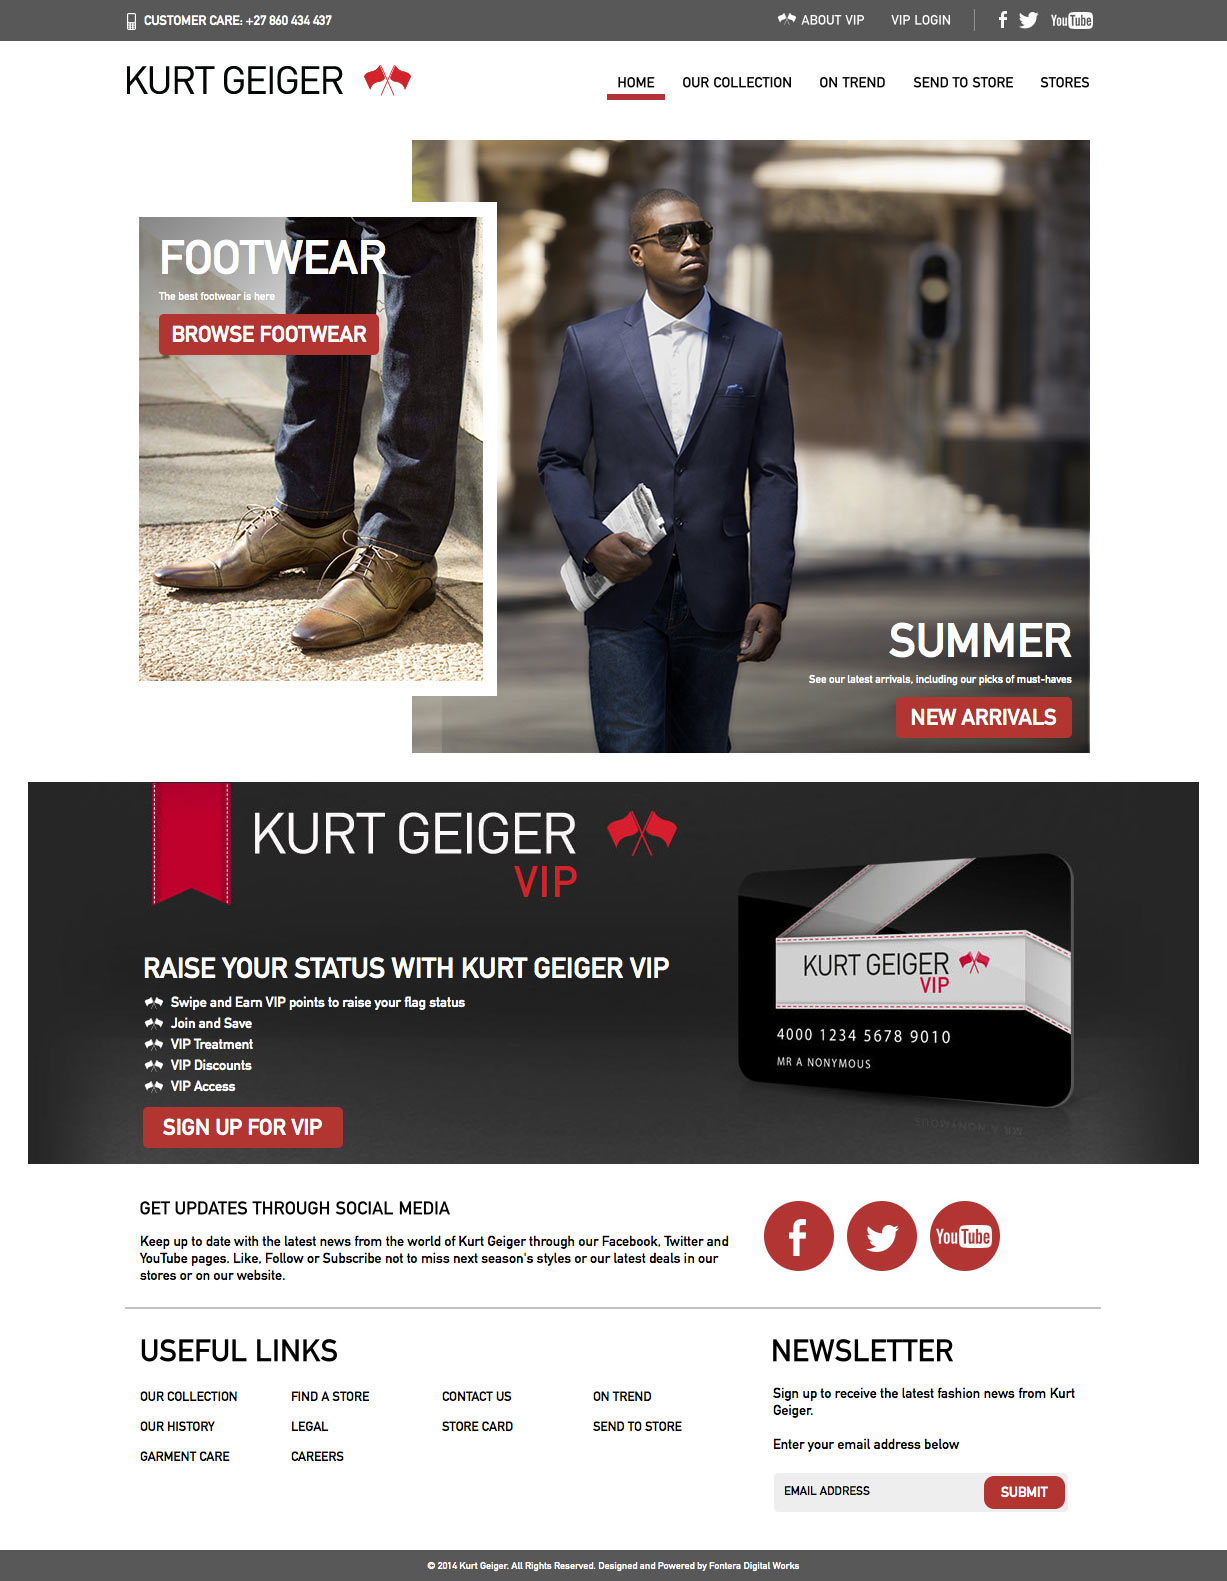 Kurt Geiger Summer 2014